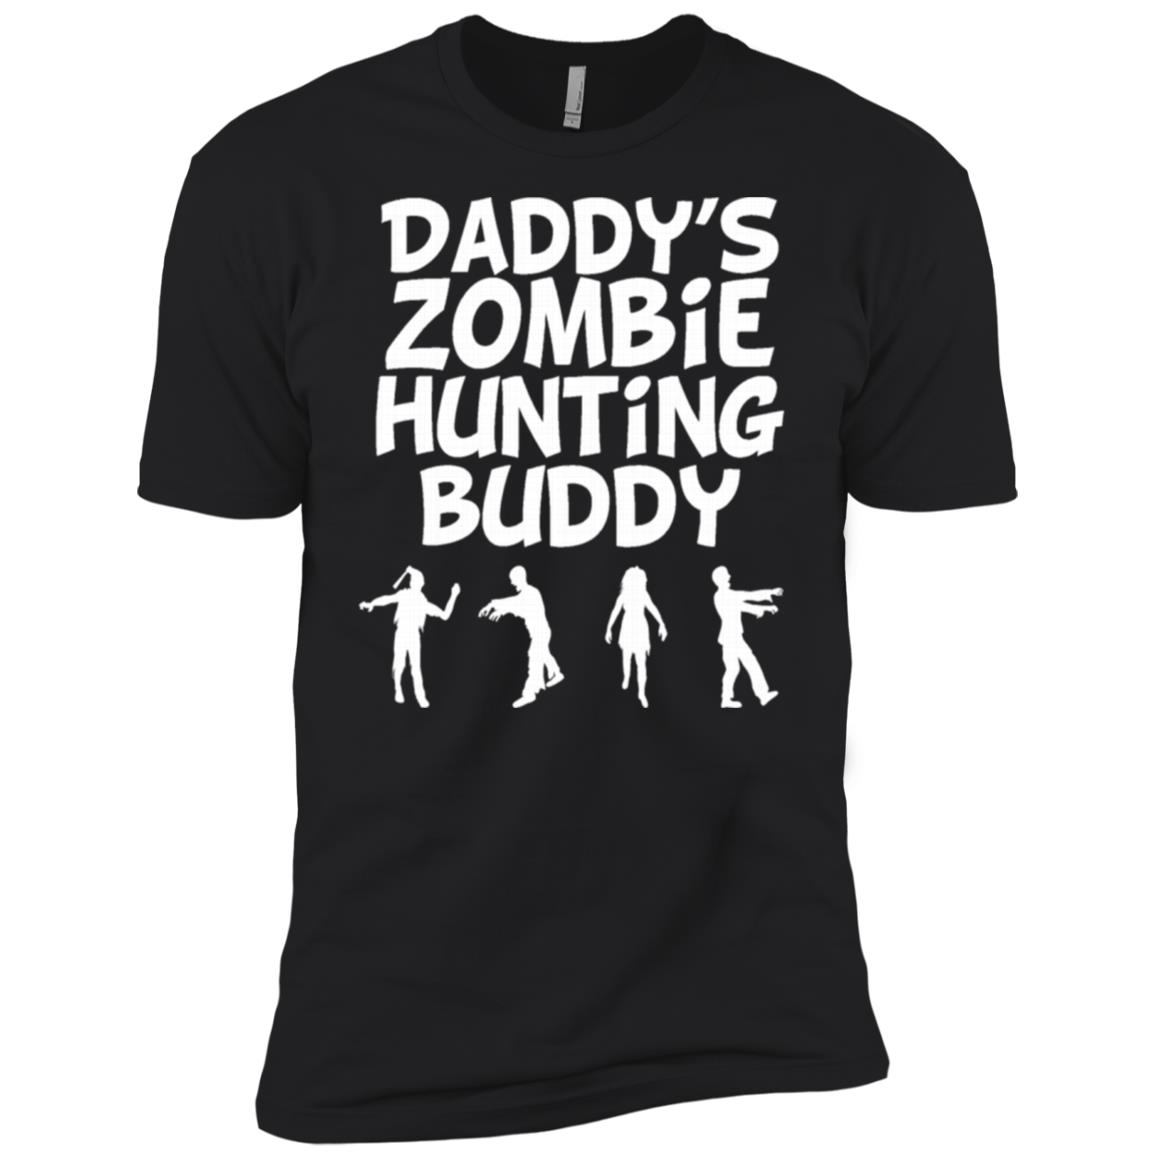 Daddys Zombie Hunting Buddy -Tee for Men Men Short Sleeve T-Shirt